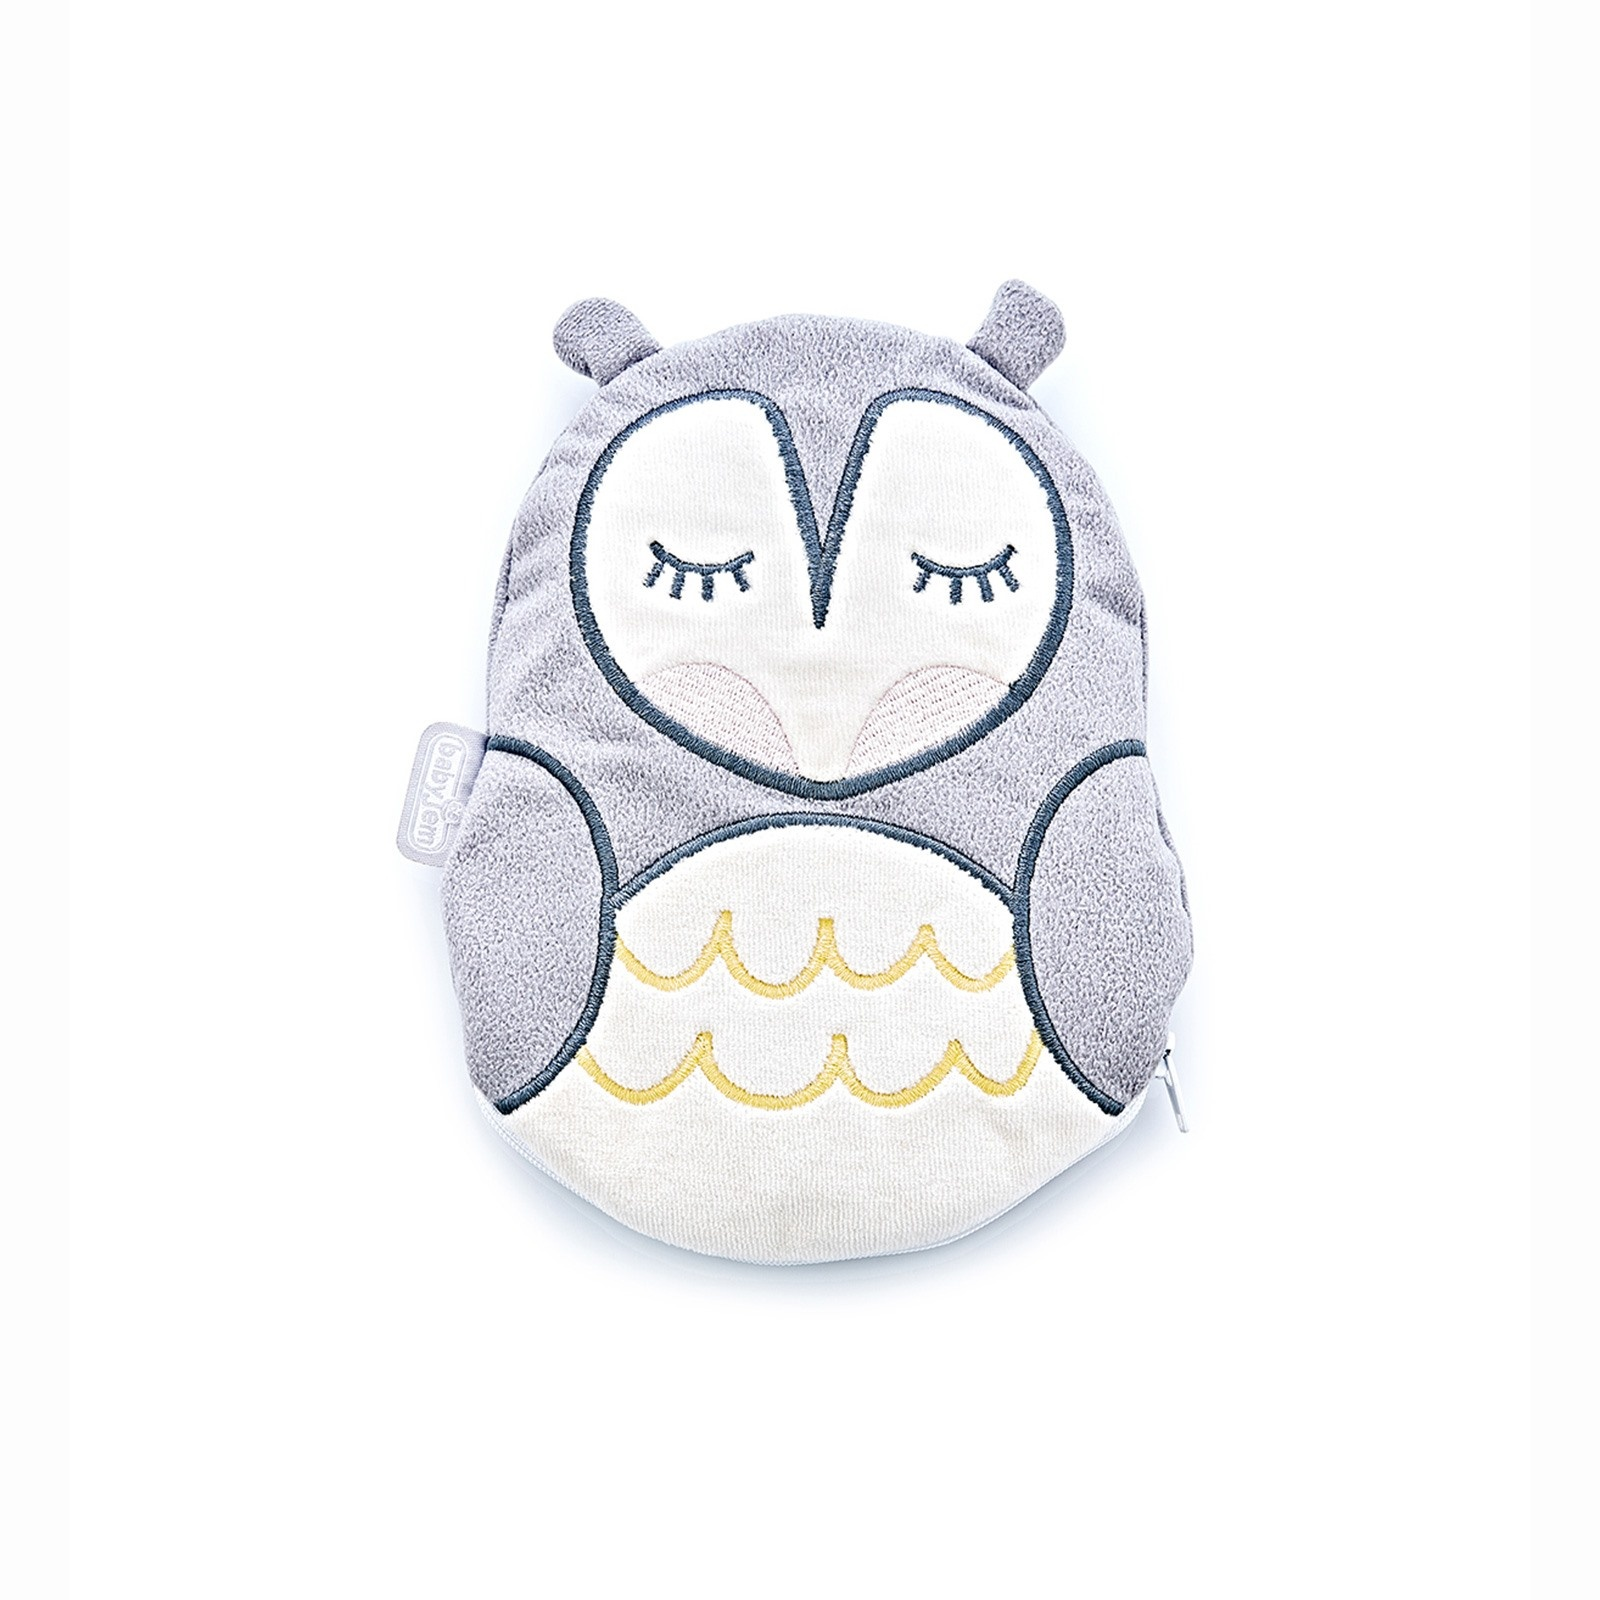 Ebebek Babyjem Owl Cherry Stone Filled Pillow For Colic - Grey 0 M+